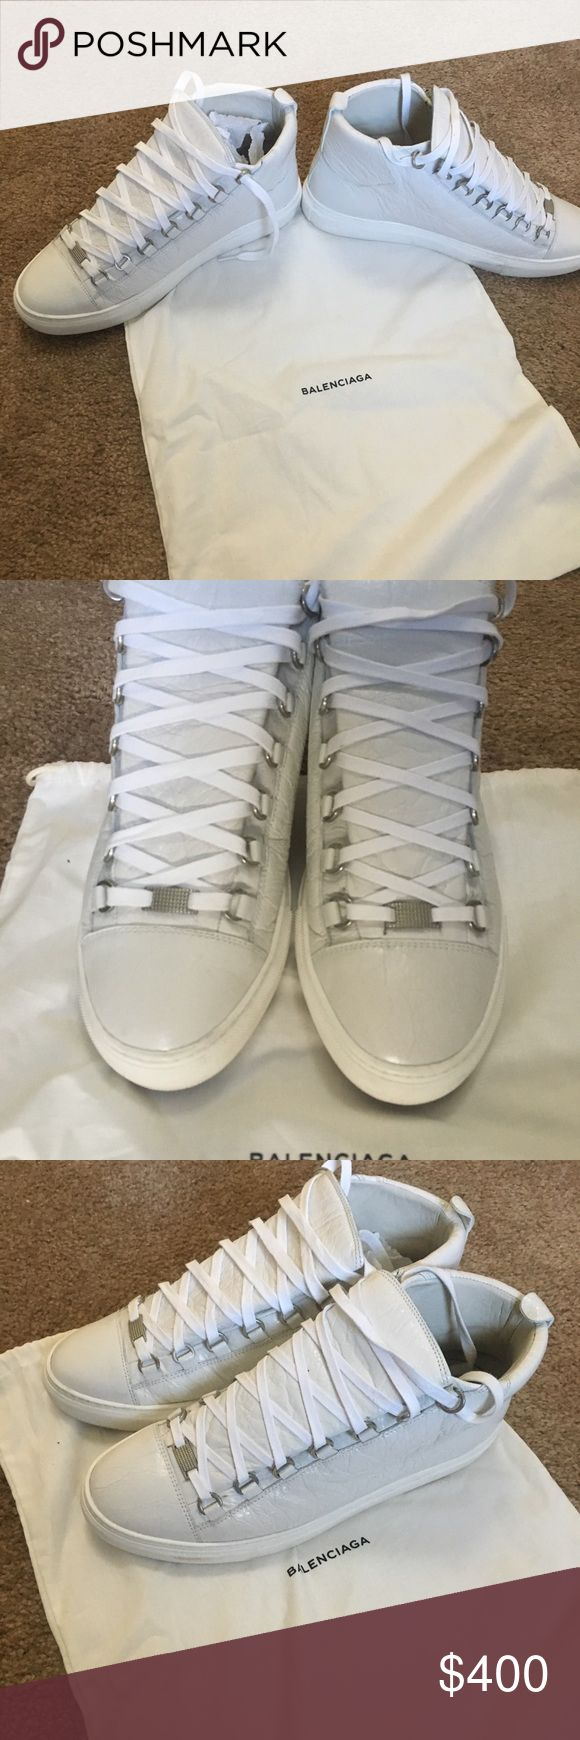 Balenciaga Arena Sz 42 These beautiful, white leather Balenciaga Arenas are a great addition to any closet! The creasing, calfskin leather and the rubber canvas bottoms are a classic Balenciaga design. These shoes are in 9/10 condition, worn carefully about 2 or 3, and are 100% authentic, bid with confidence! Balenciaga Shoes Sneakers